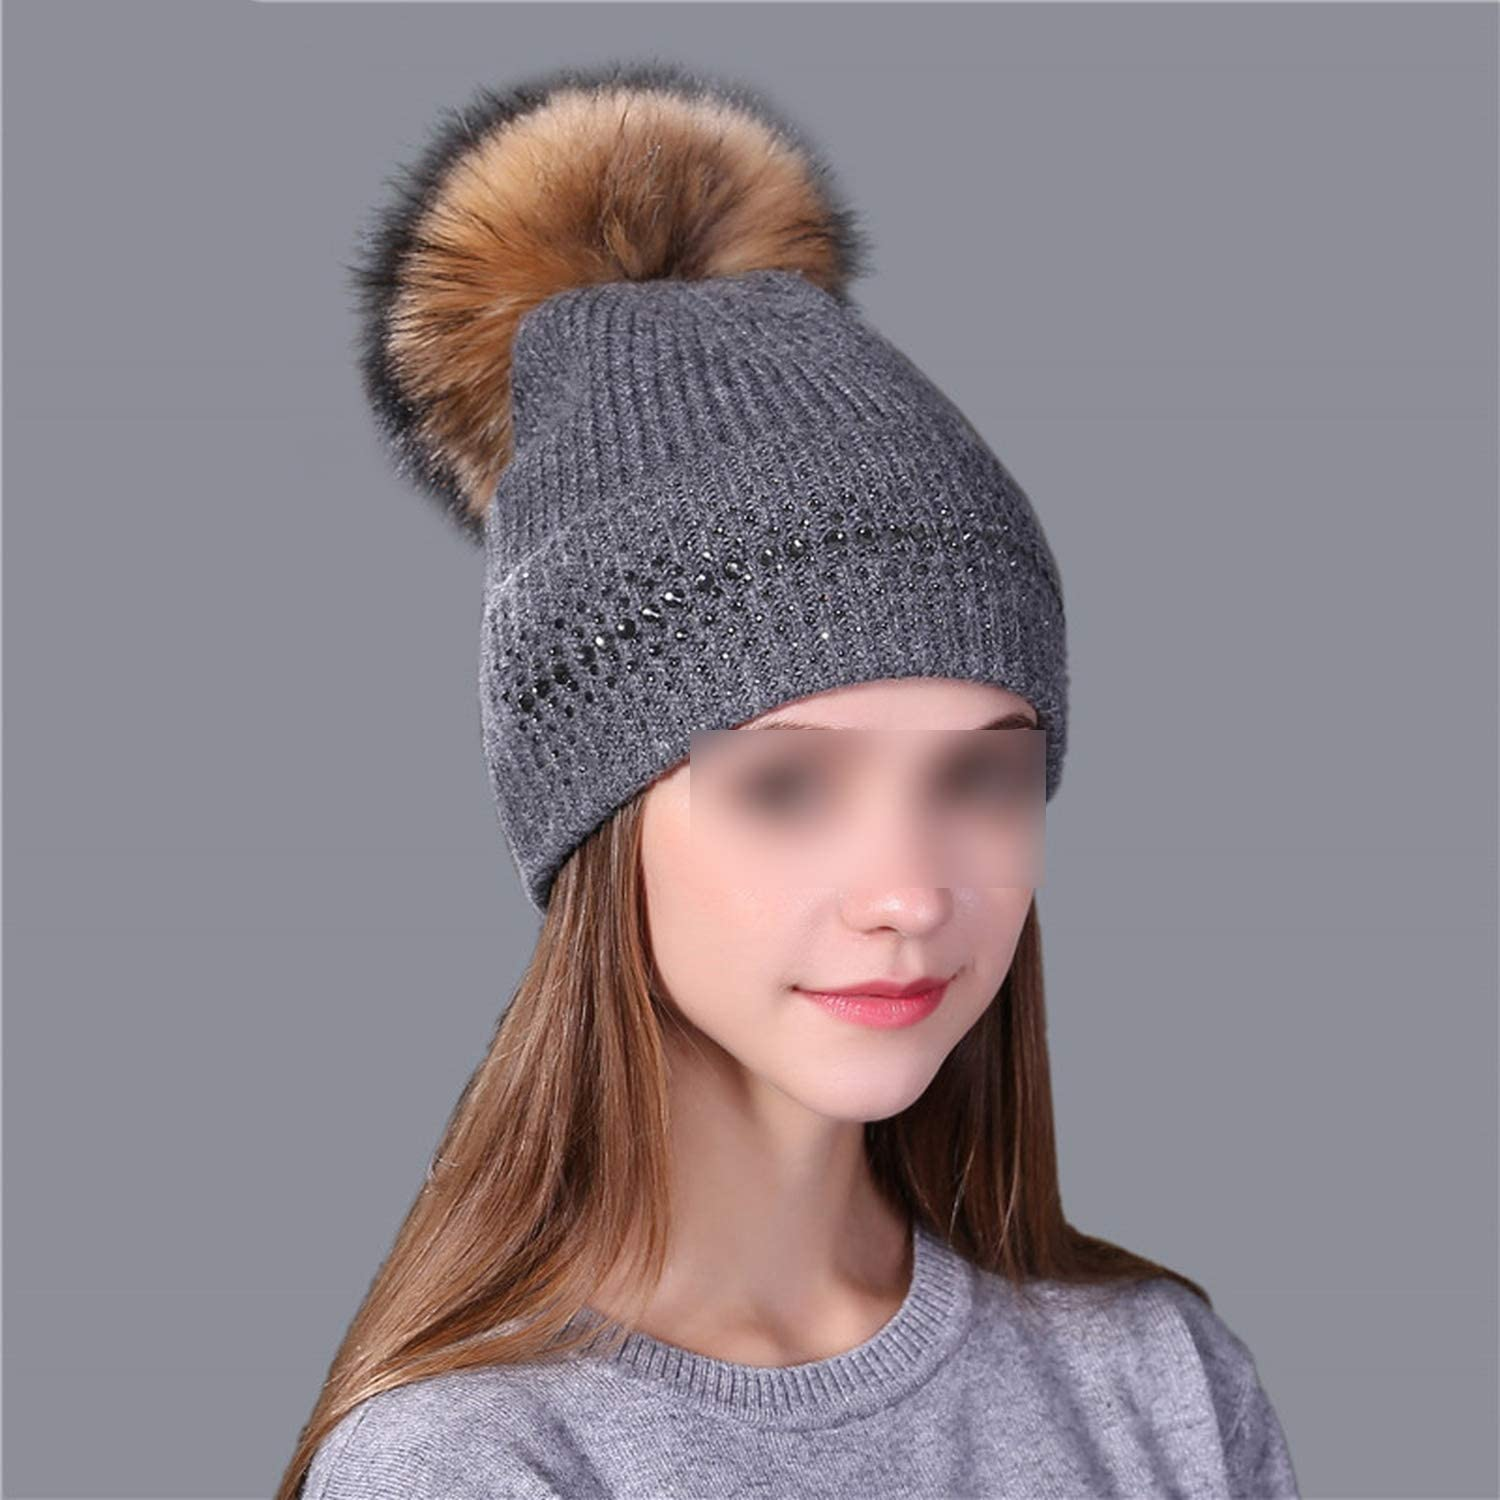 Winter Beanie Hat for Women Real M-Ink F-ur Pom Poms Wool Knitted Girl Hat